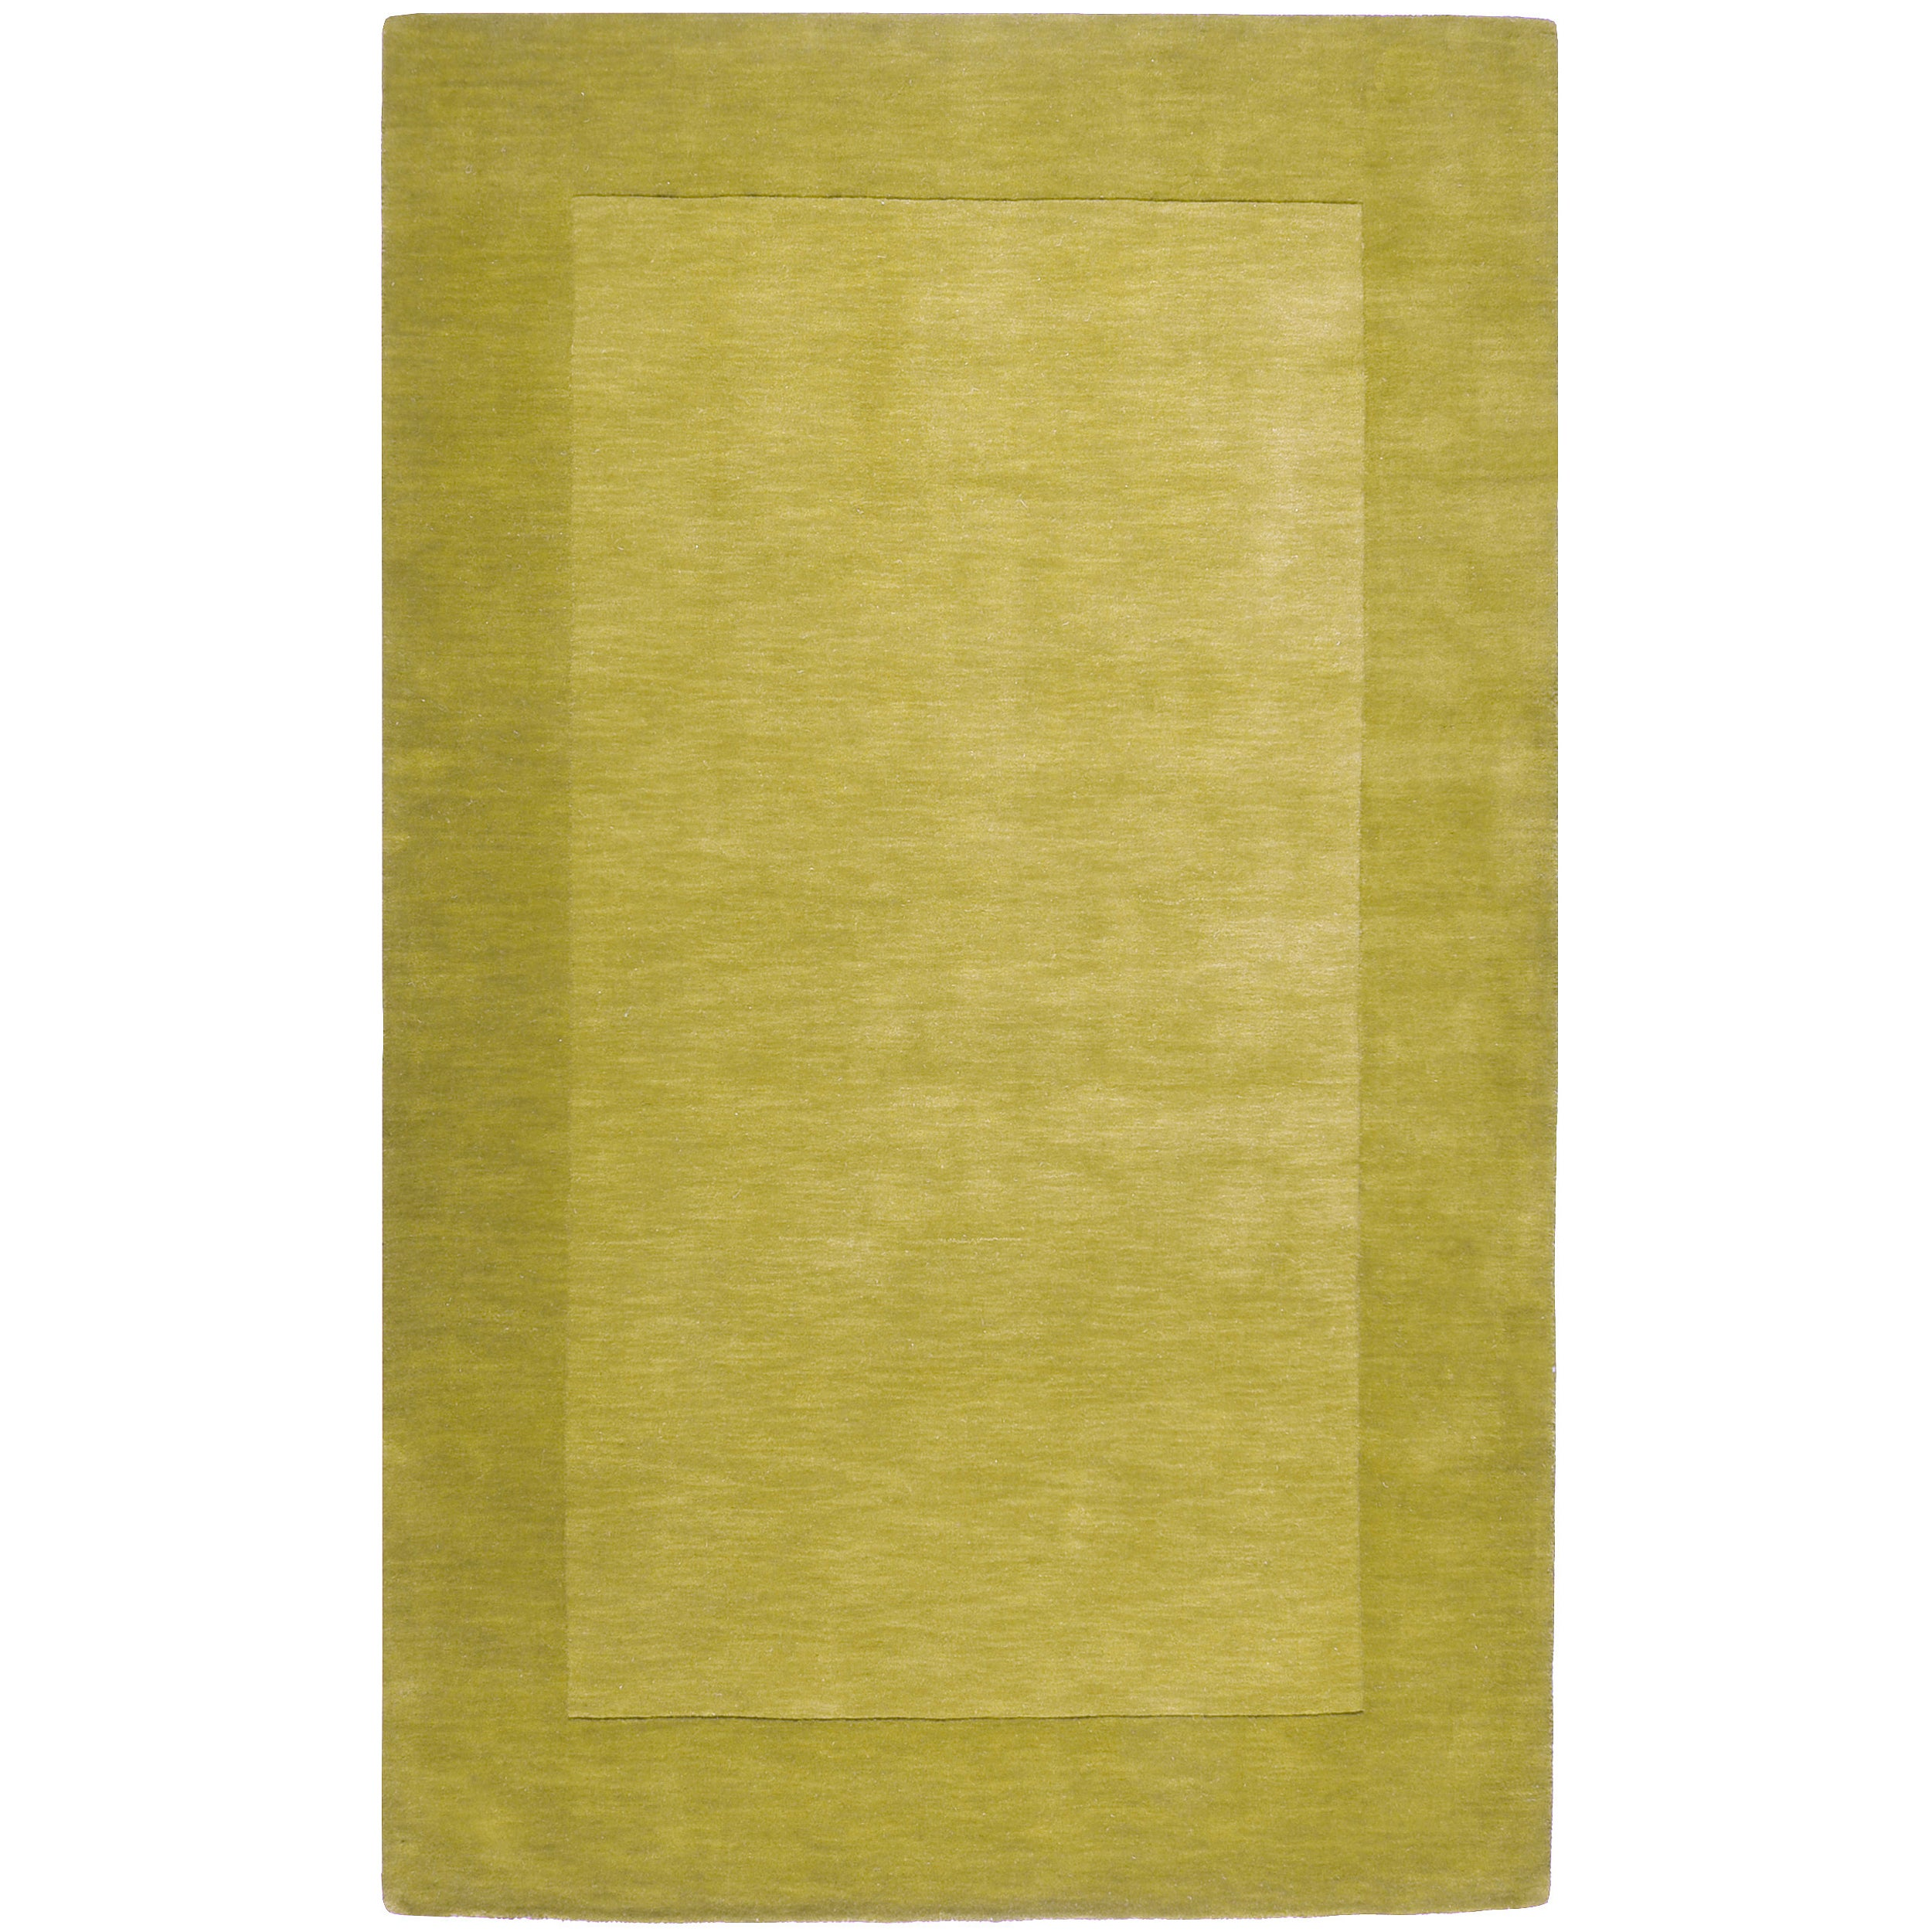 Overstock.com Hand-crafted Green Tone-On-Tone Bordered Eluro Wool Rug (5' x 8') at Sears.com